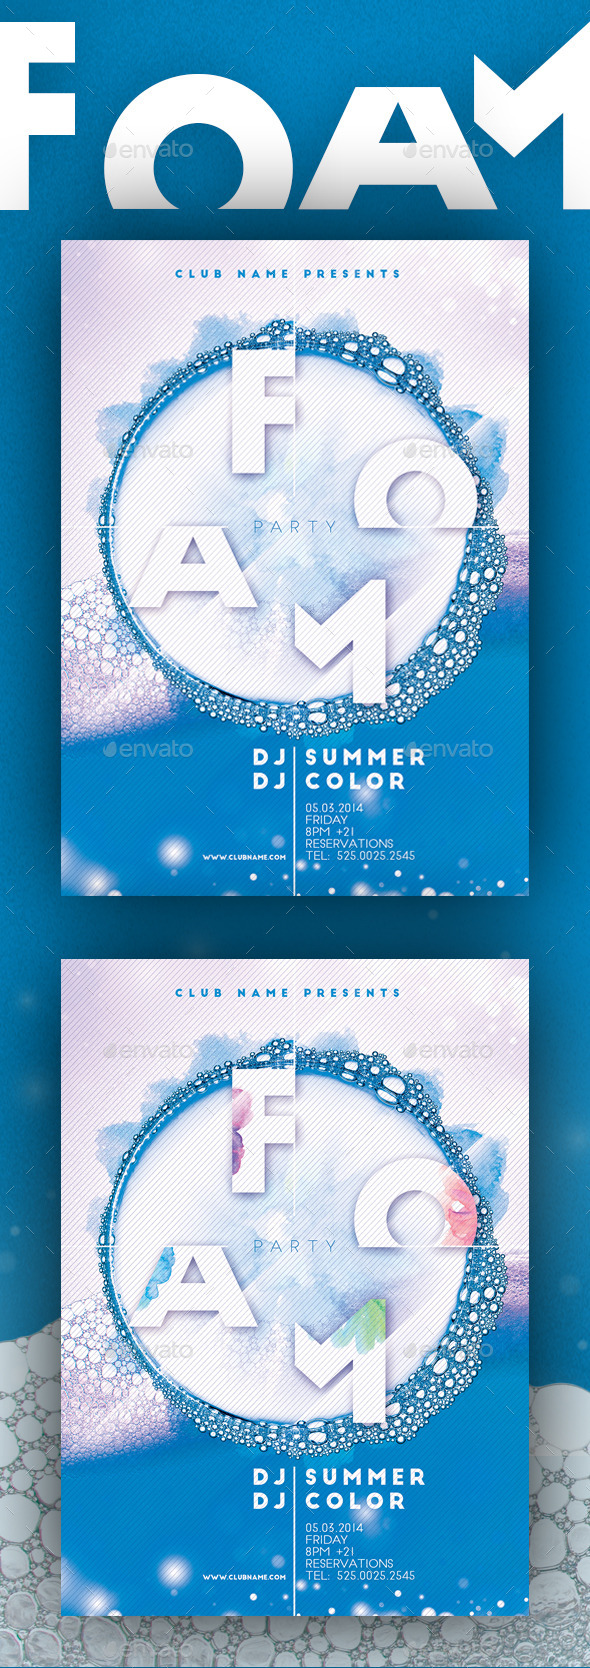 GraphicRiver Foam Party Flyer Poster 10981470